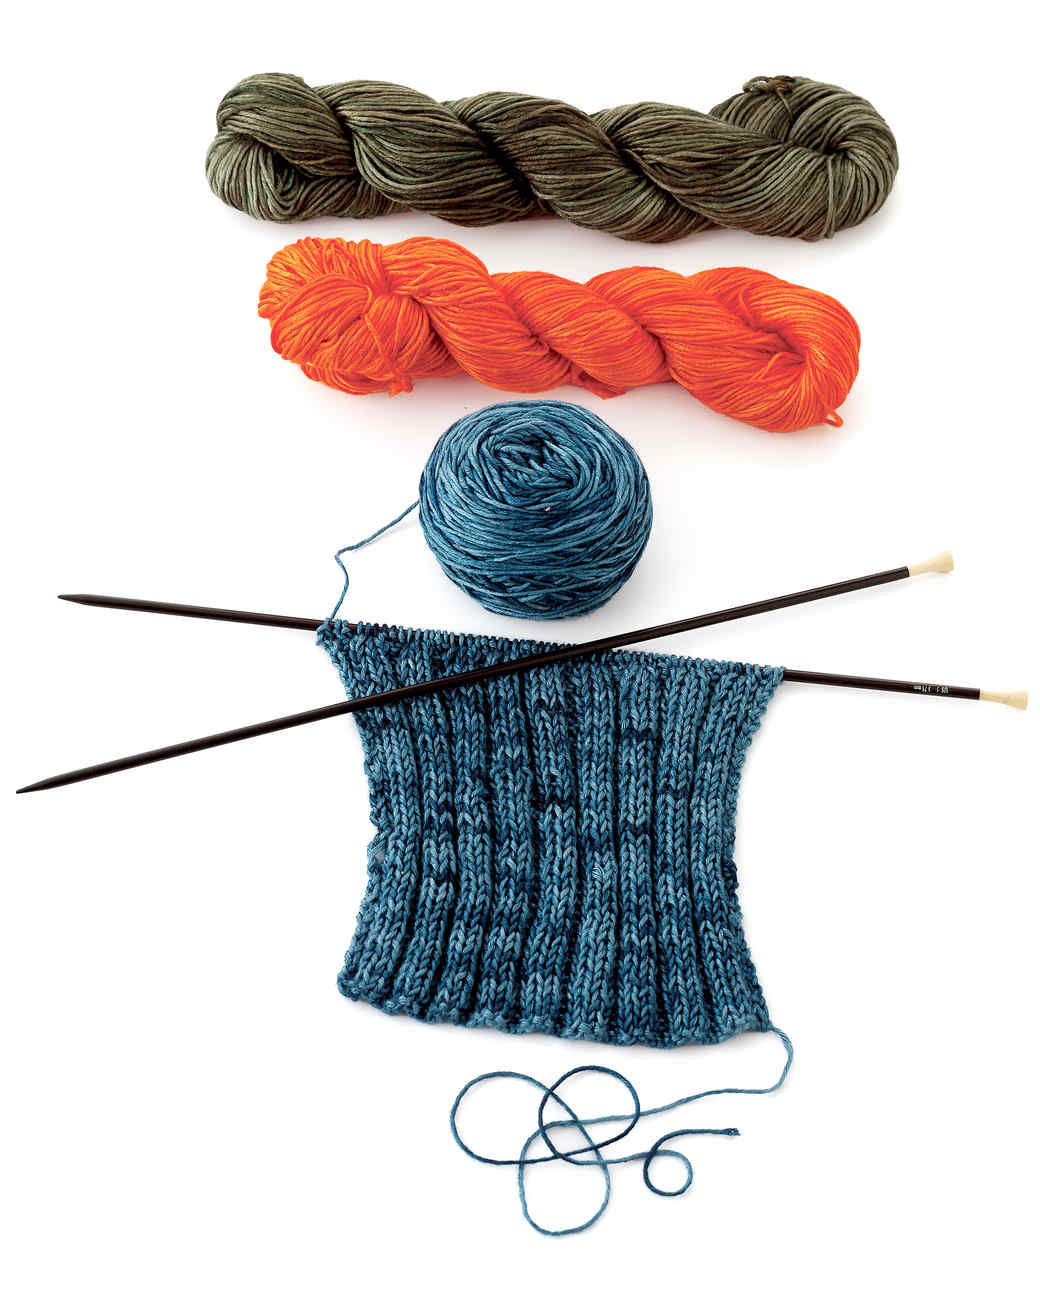 Knitting Materials For Beginners : Knitting tools and materials martha stewart